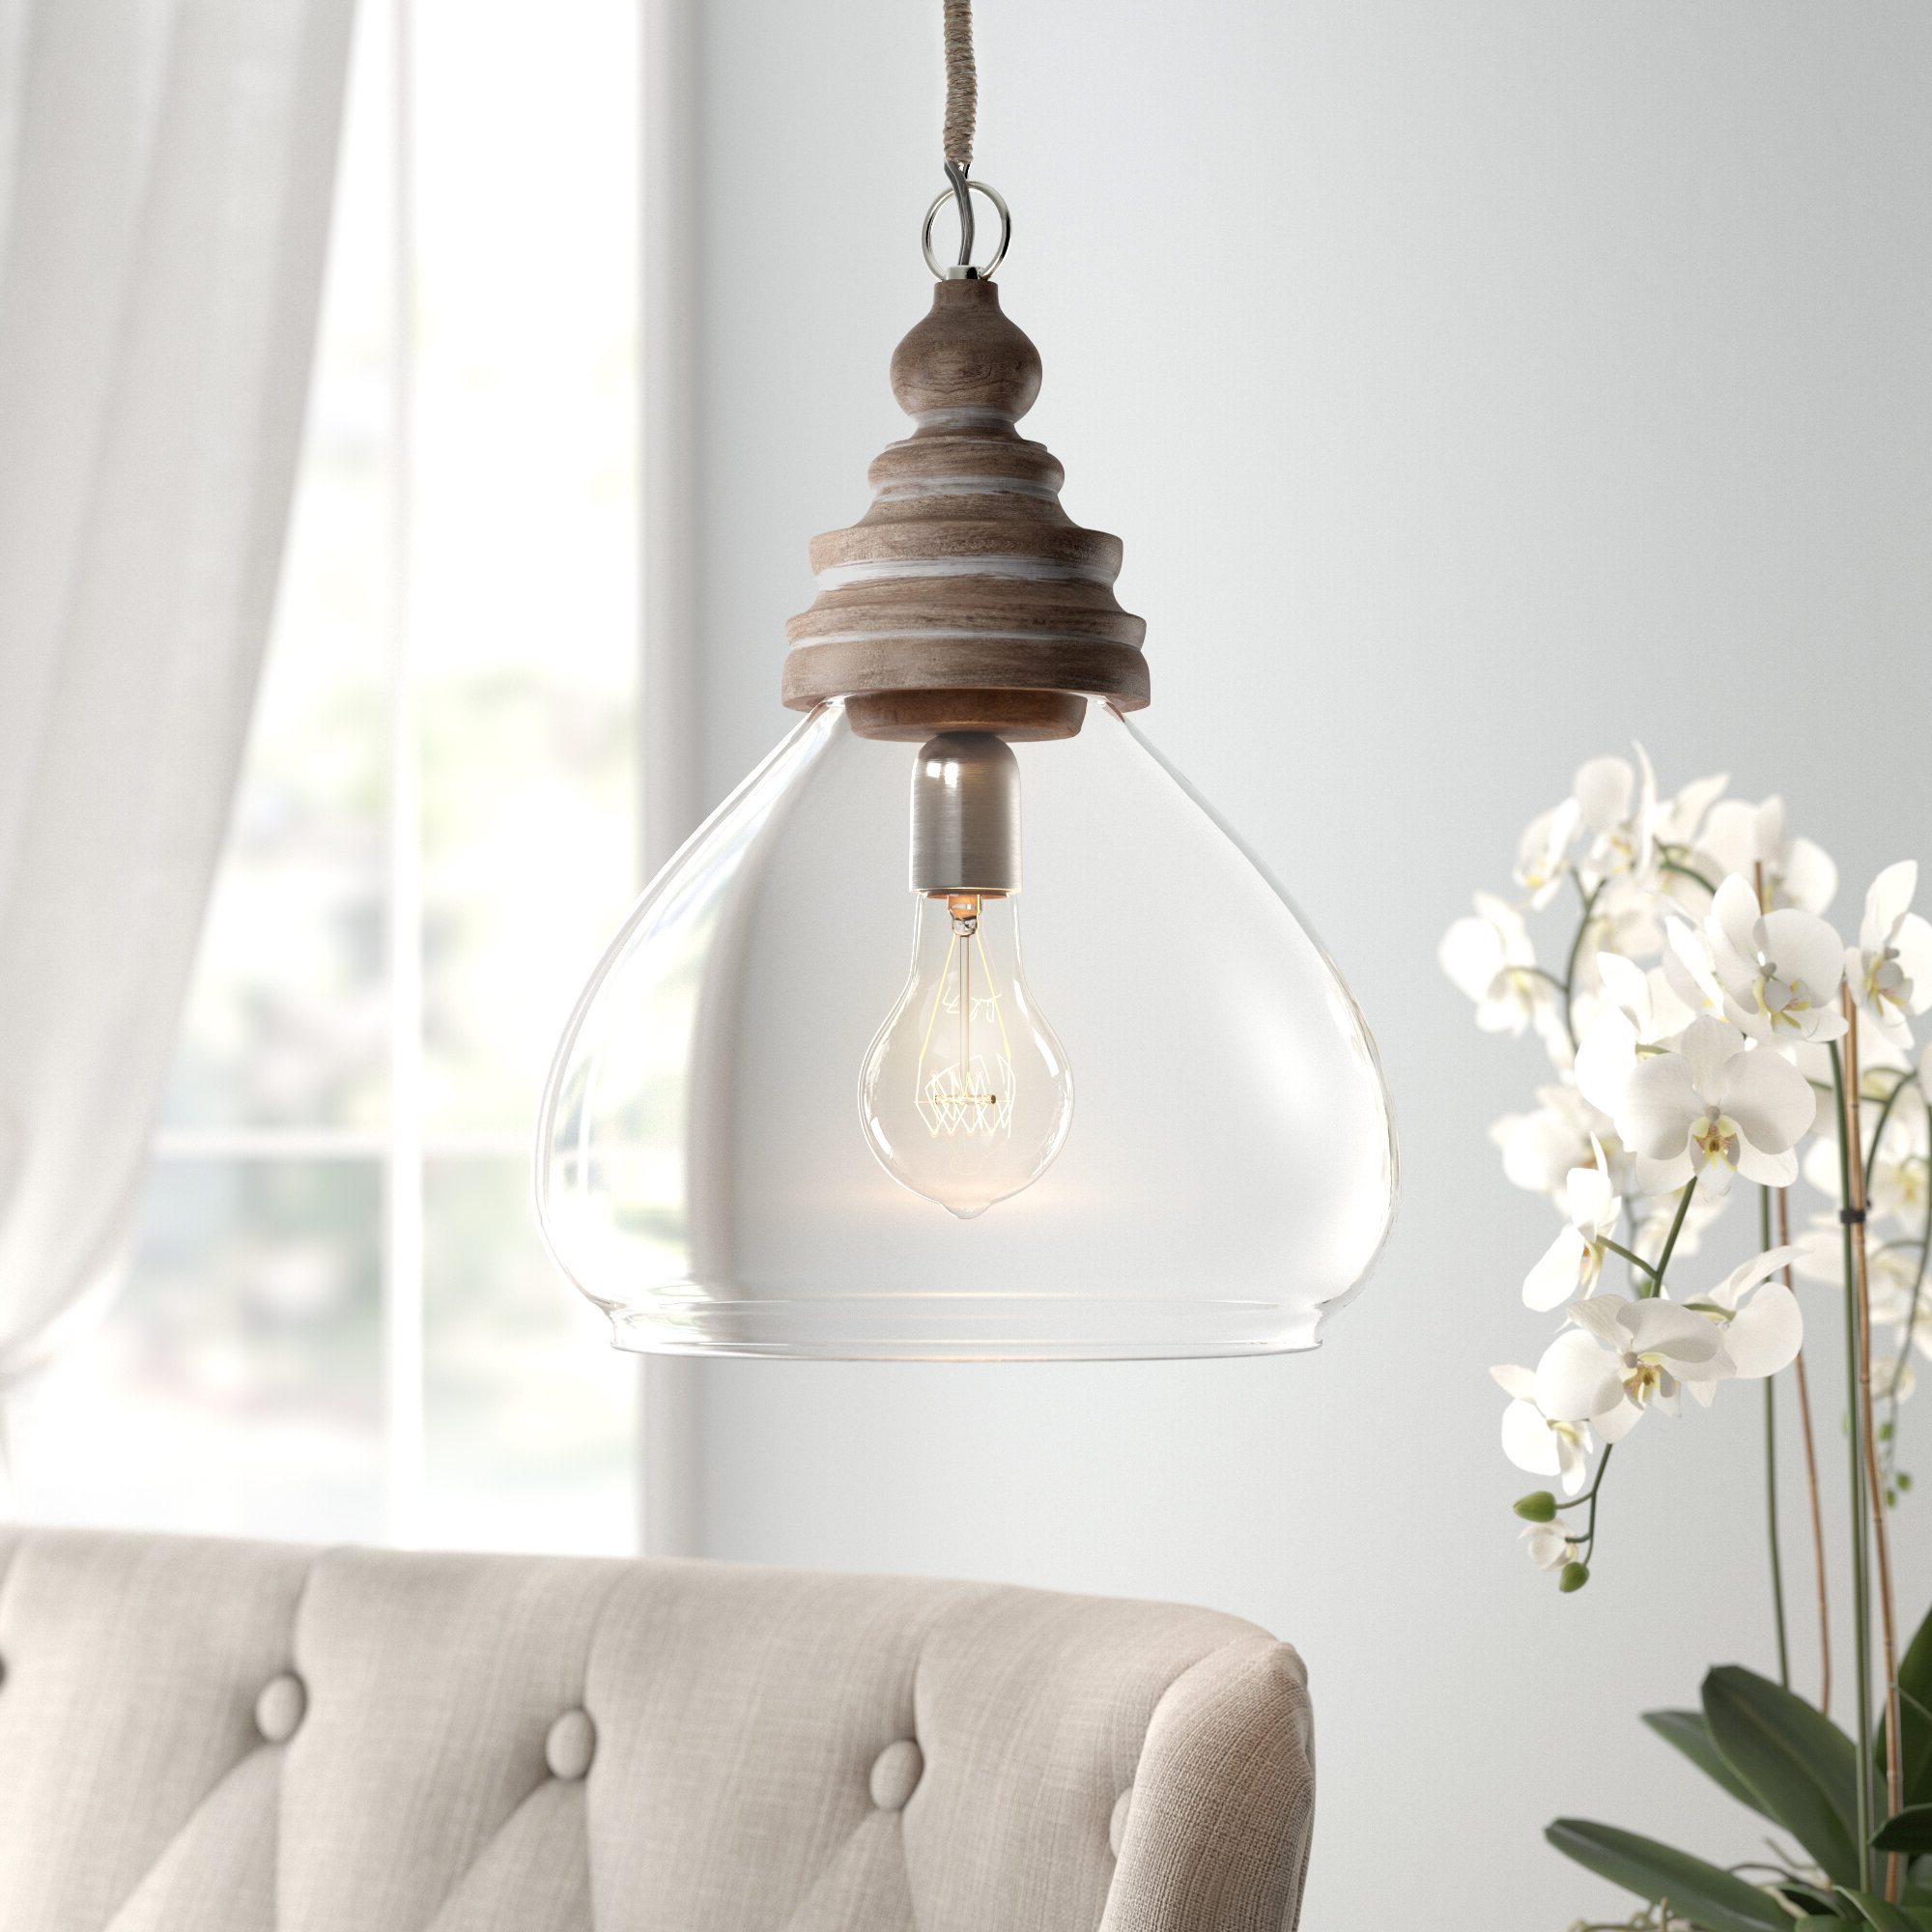 Brisa 1 Light Single Dome Pendant Throughout Famous Moyer 1 Light Single Cylinder Pendants (View 17 of 25)